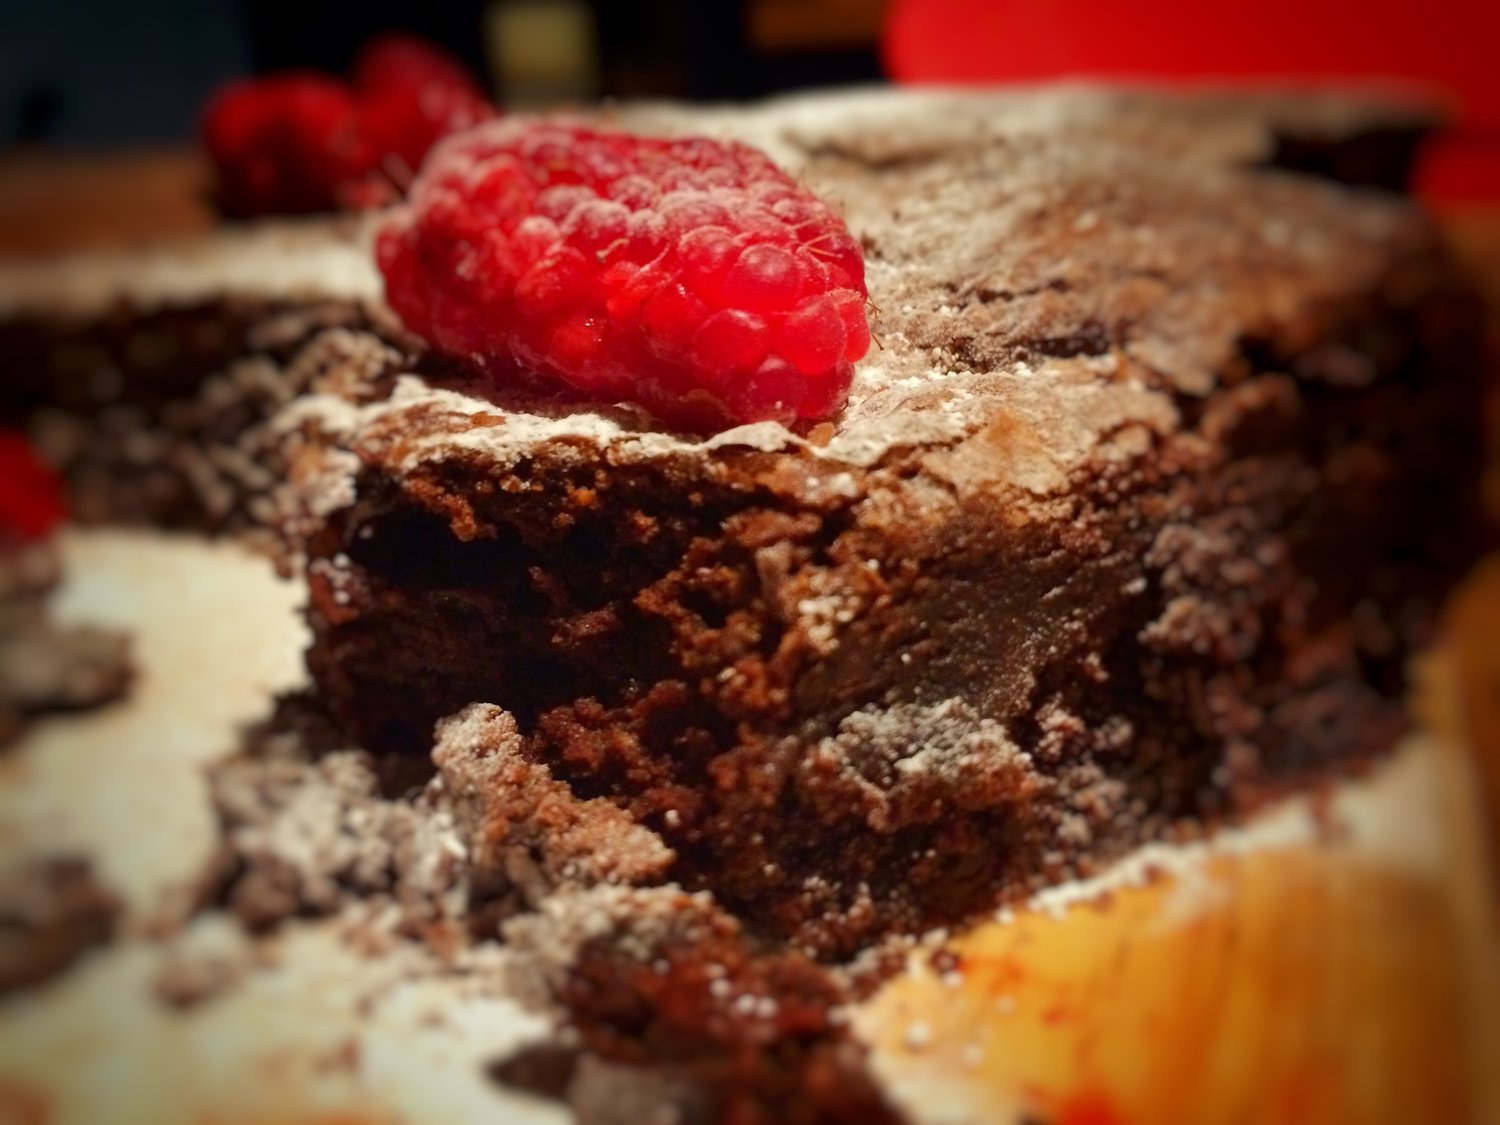 Nothing better than a crispy top, melt in the mouth dark chocolate brownie from time to time!